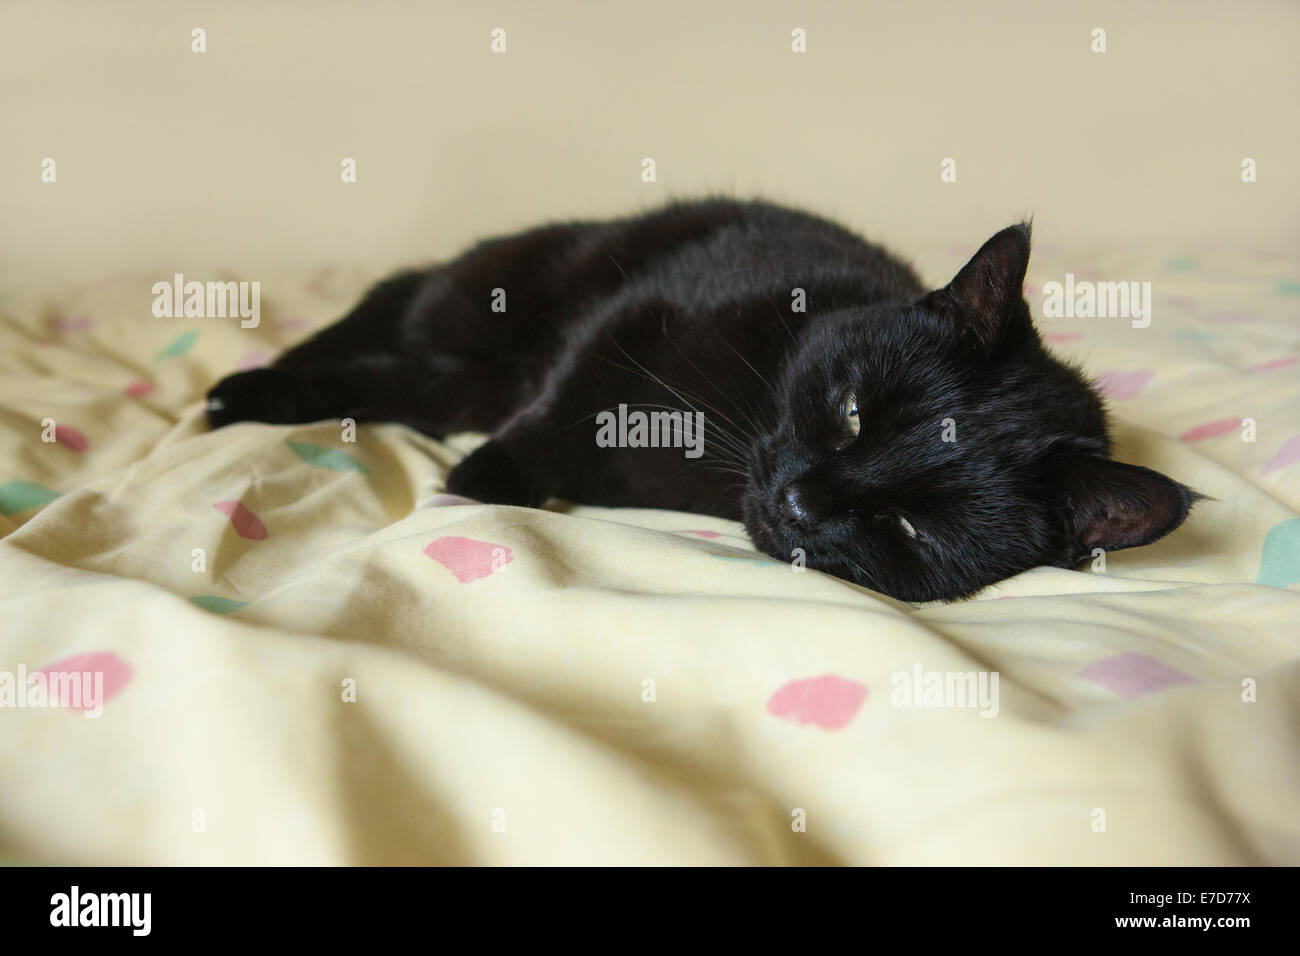 A sleepy cat just barely awake on a bed - Stock Image